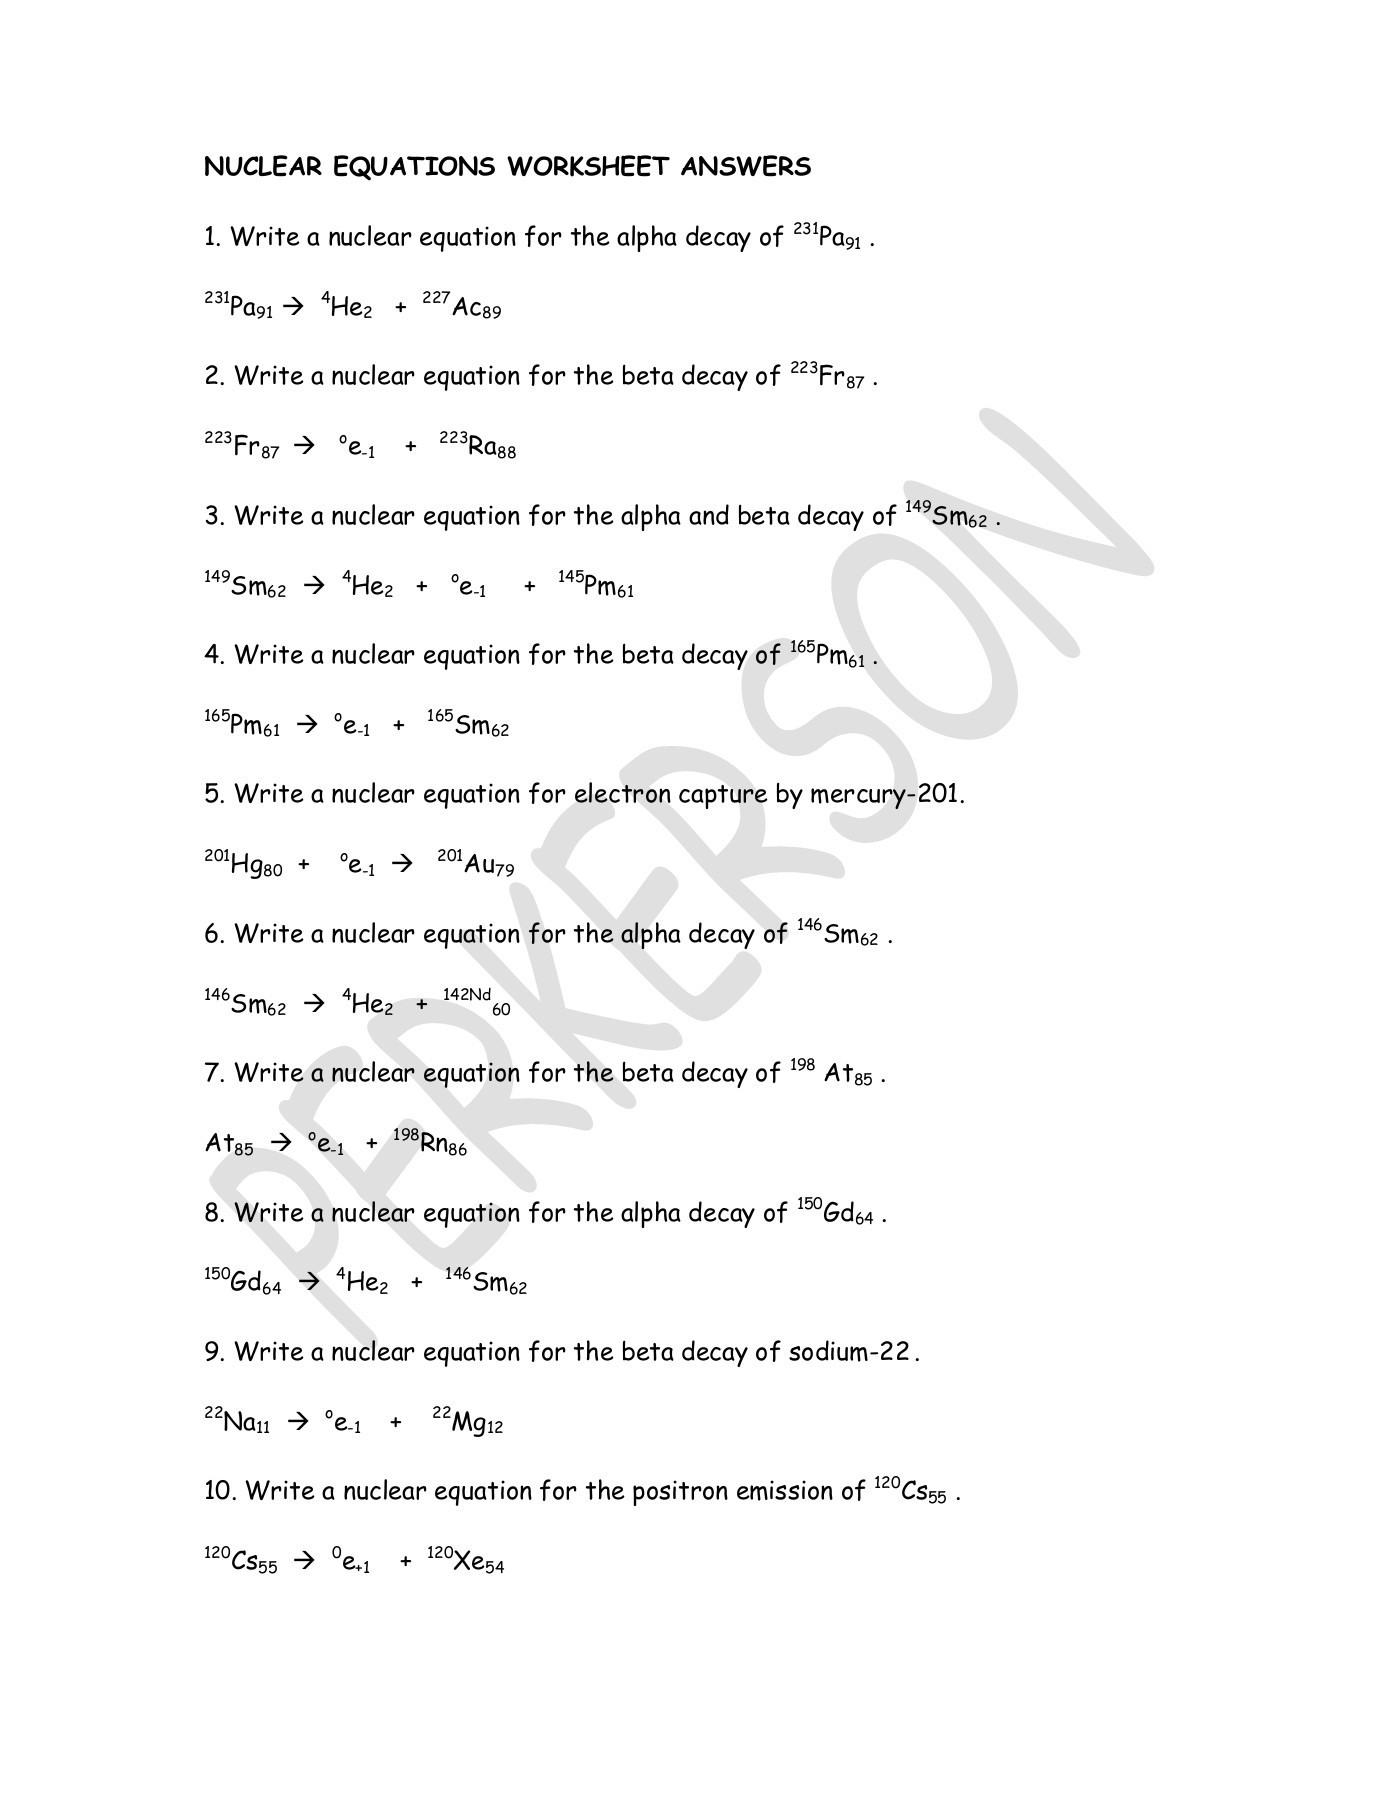 Nuclear Equations Worksheet Answers Typepad Pages 1 3